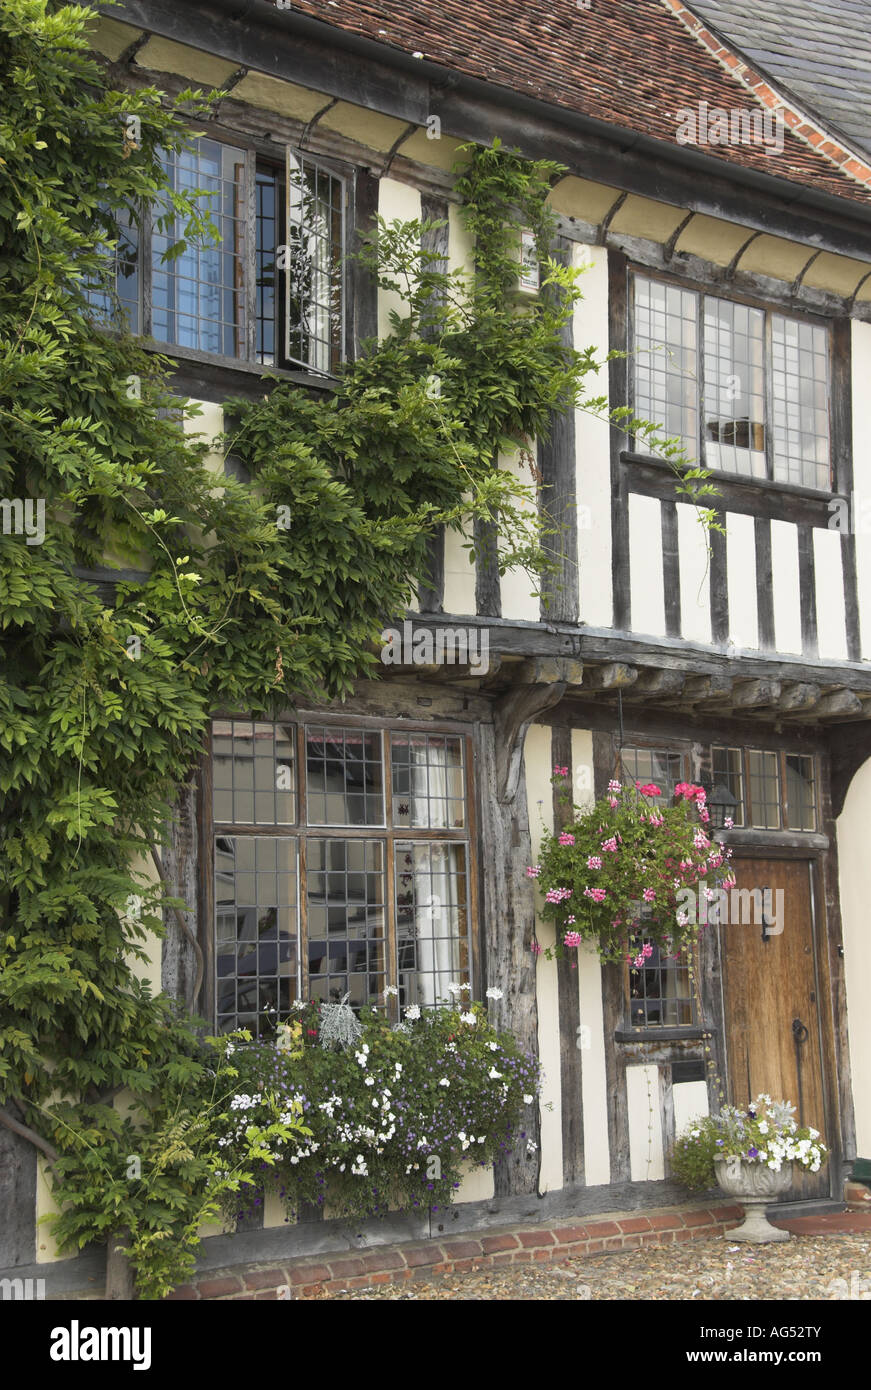 Lavenham Half timbered house with hanging baskets and climbing plants - Stock Image